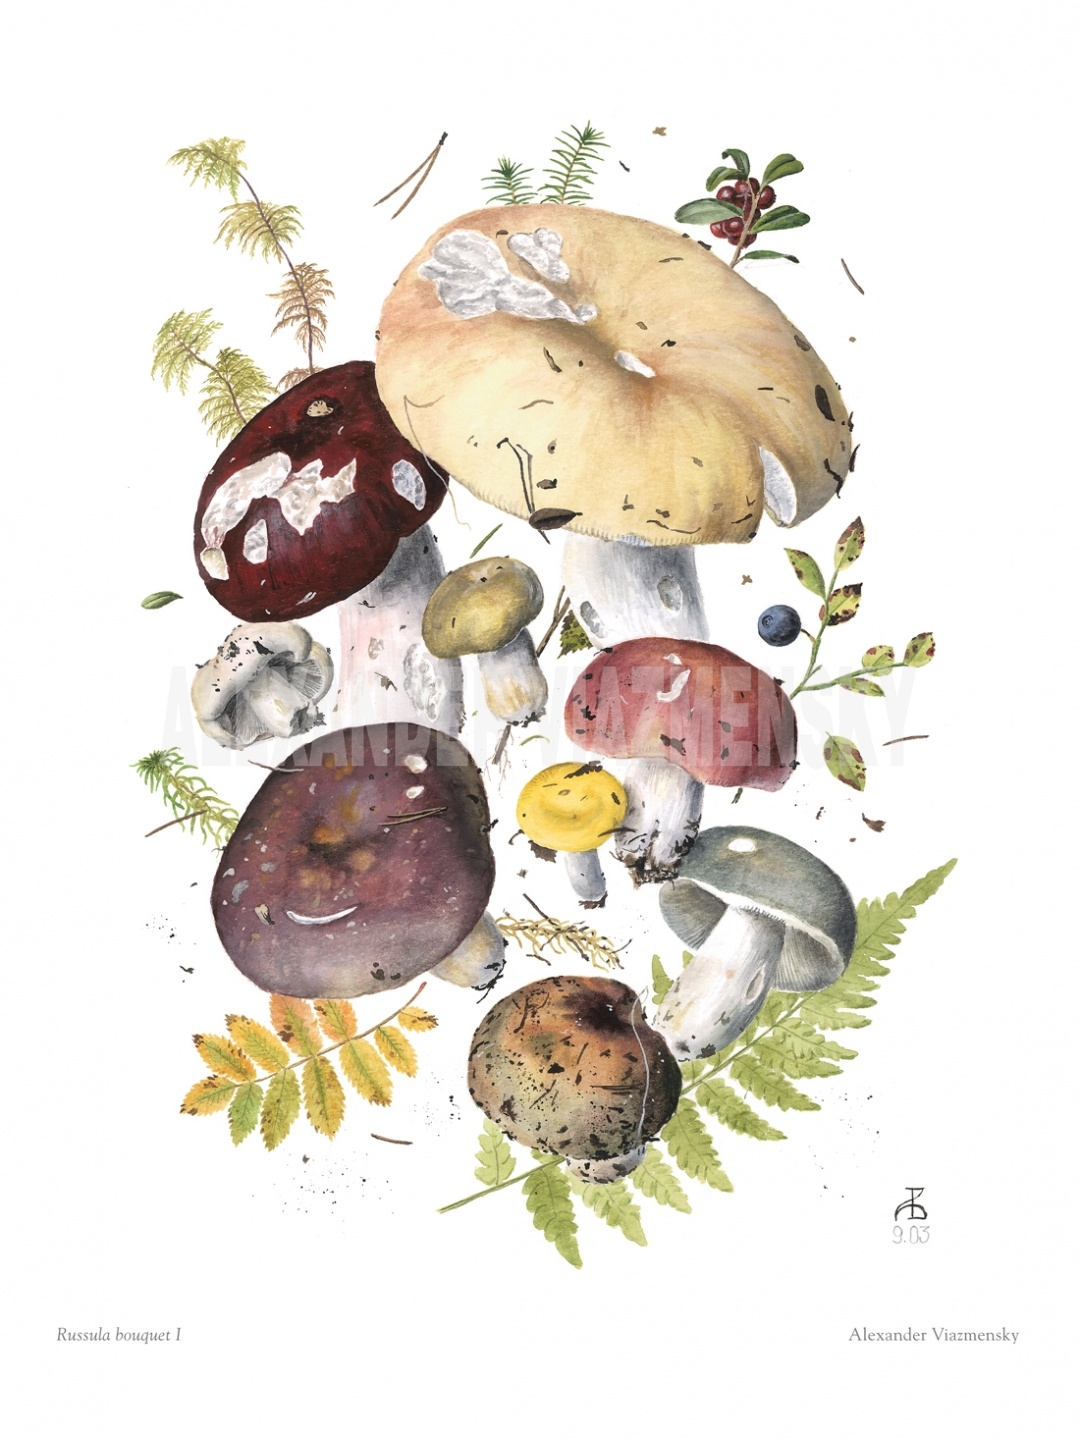 Russula Bouquet I